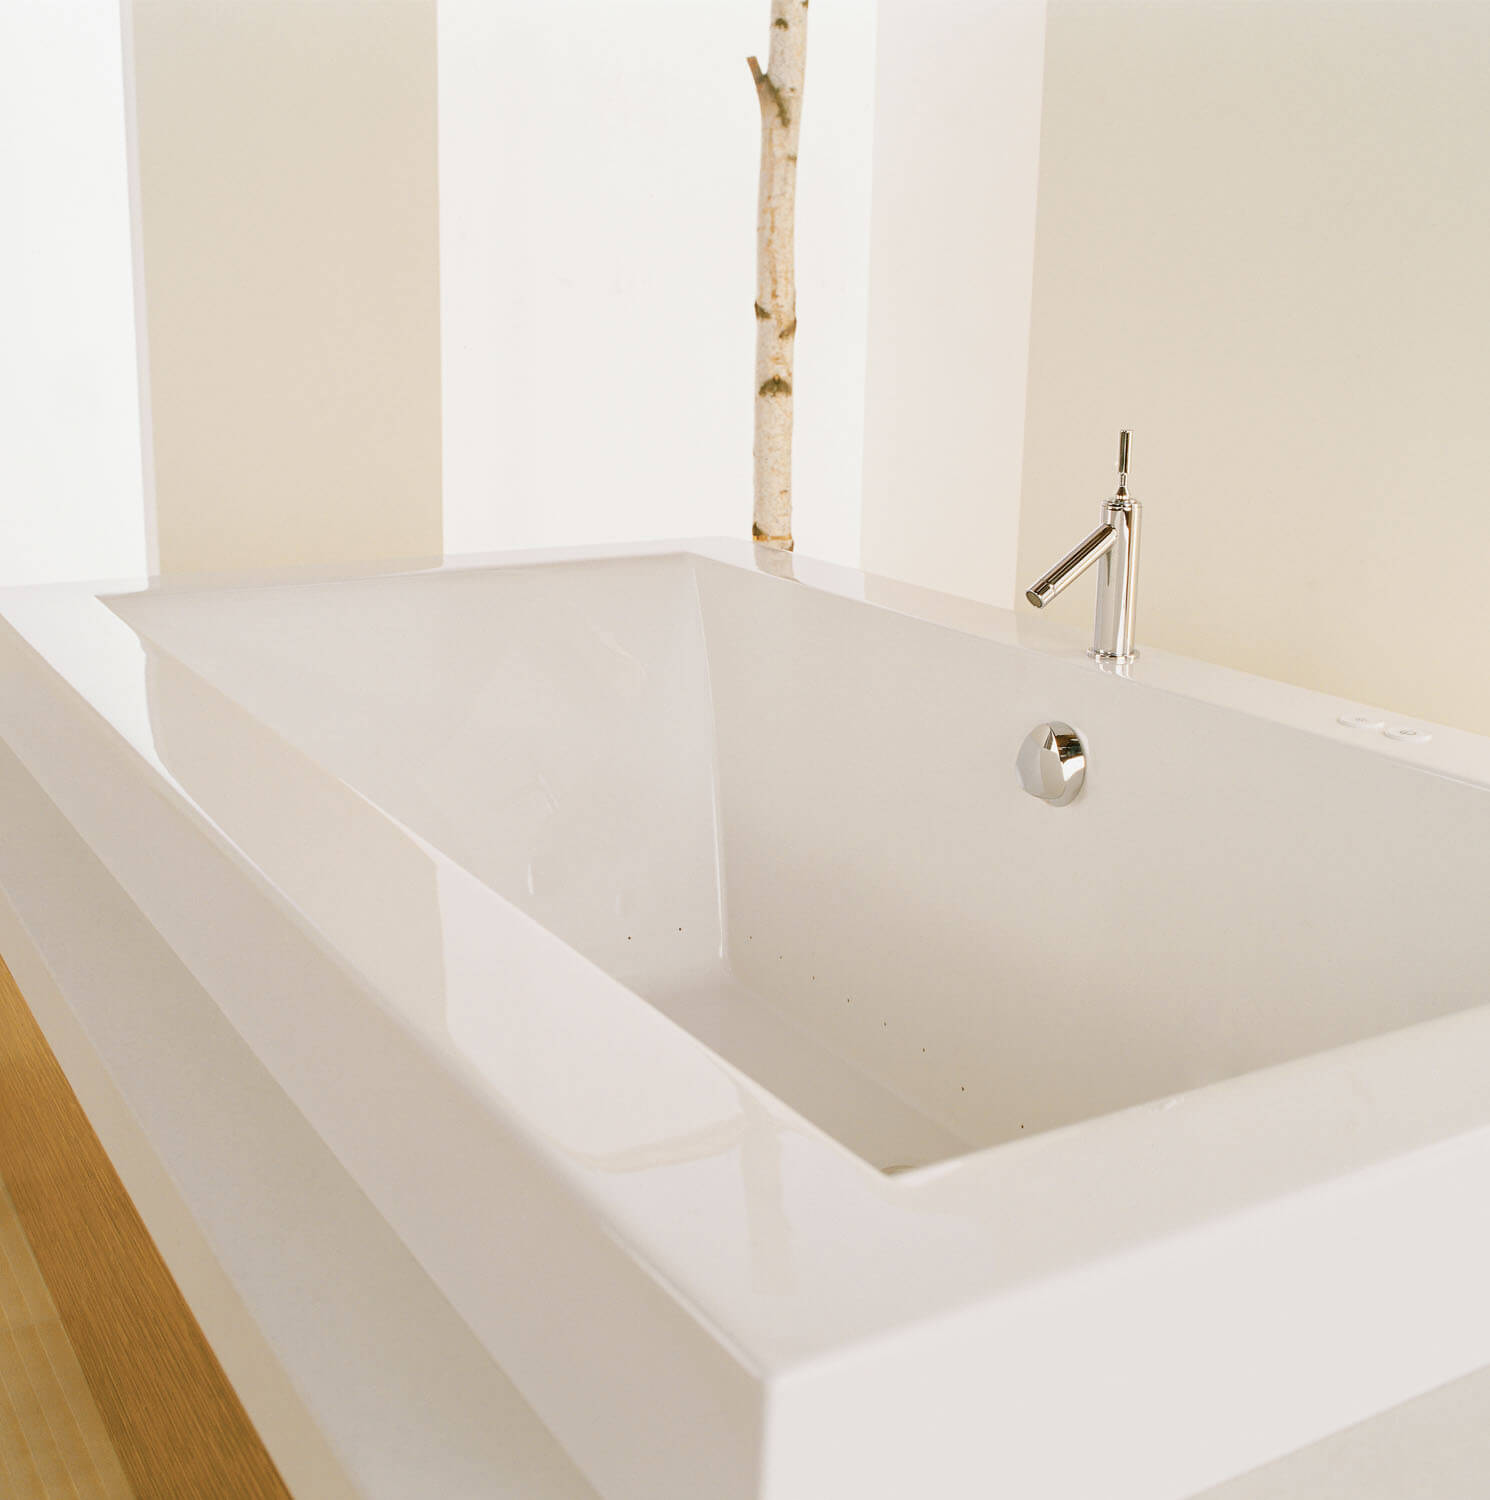 Bainultra Origami® 7236 Original Series two person large air jet bathtub for your modern bathroom